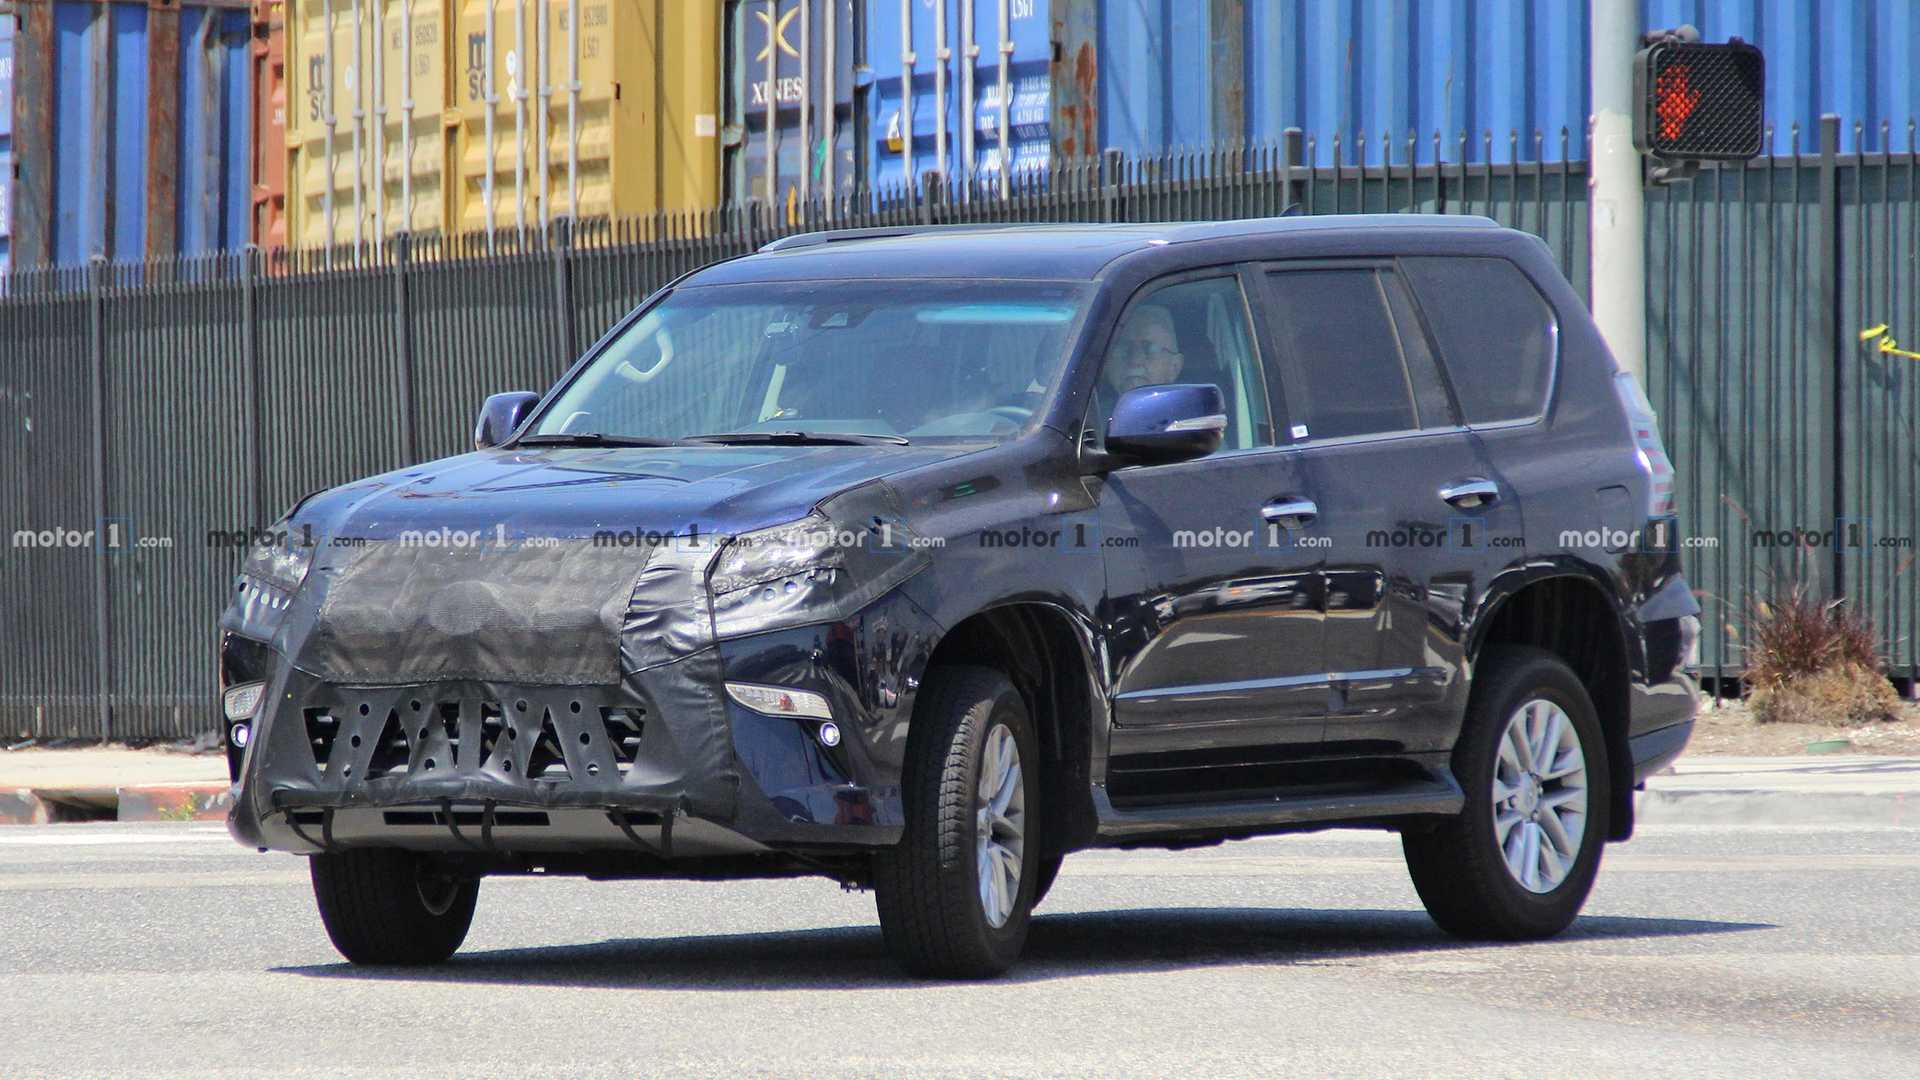 54 New 2020 Lexus Gx 460 Spy Photos Spesification by 2020 Lexus Gx 460 Spy Photos